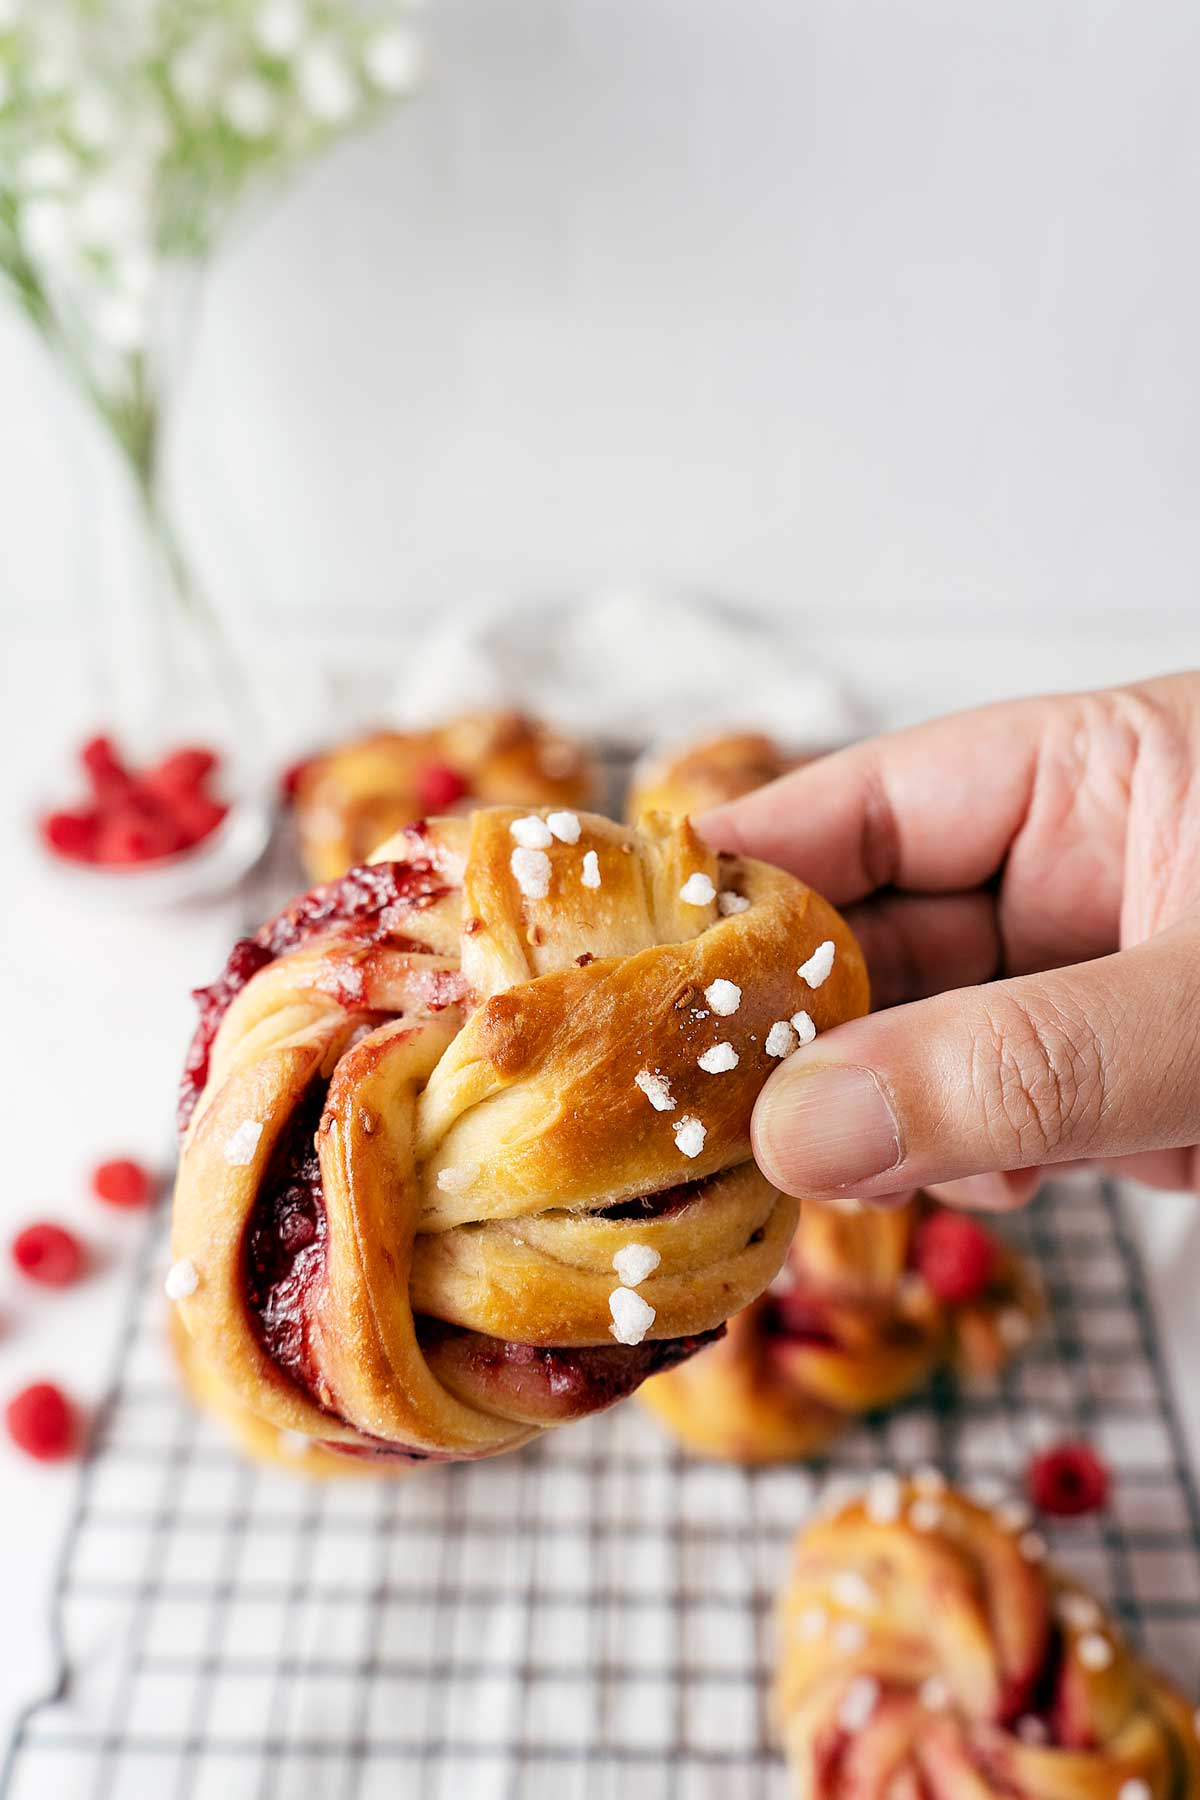 holding a raspberry twisted bun